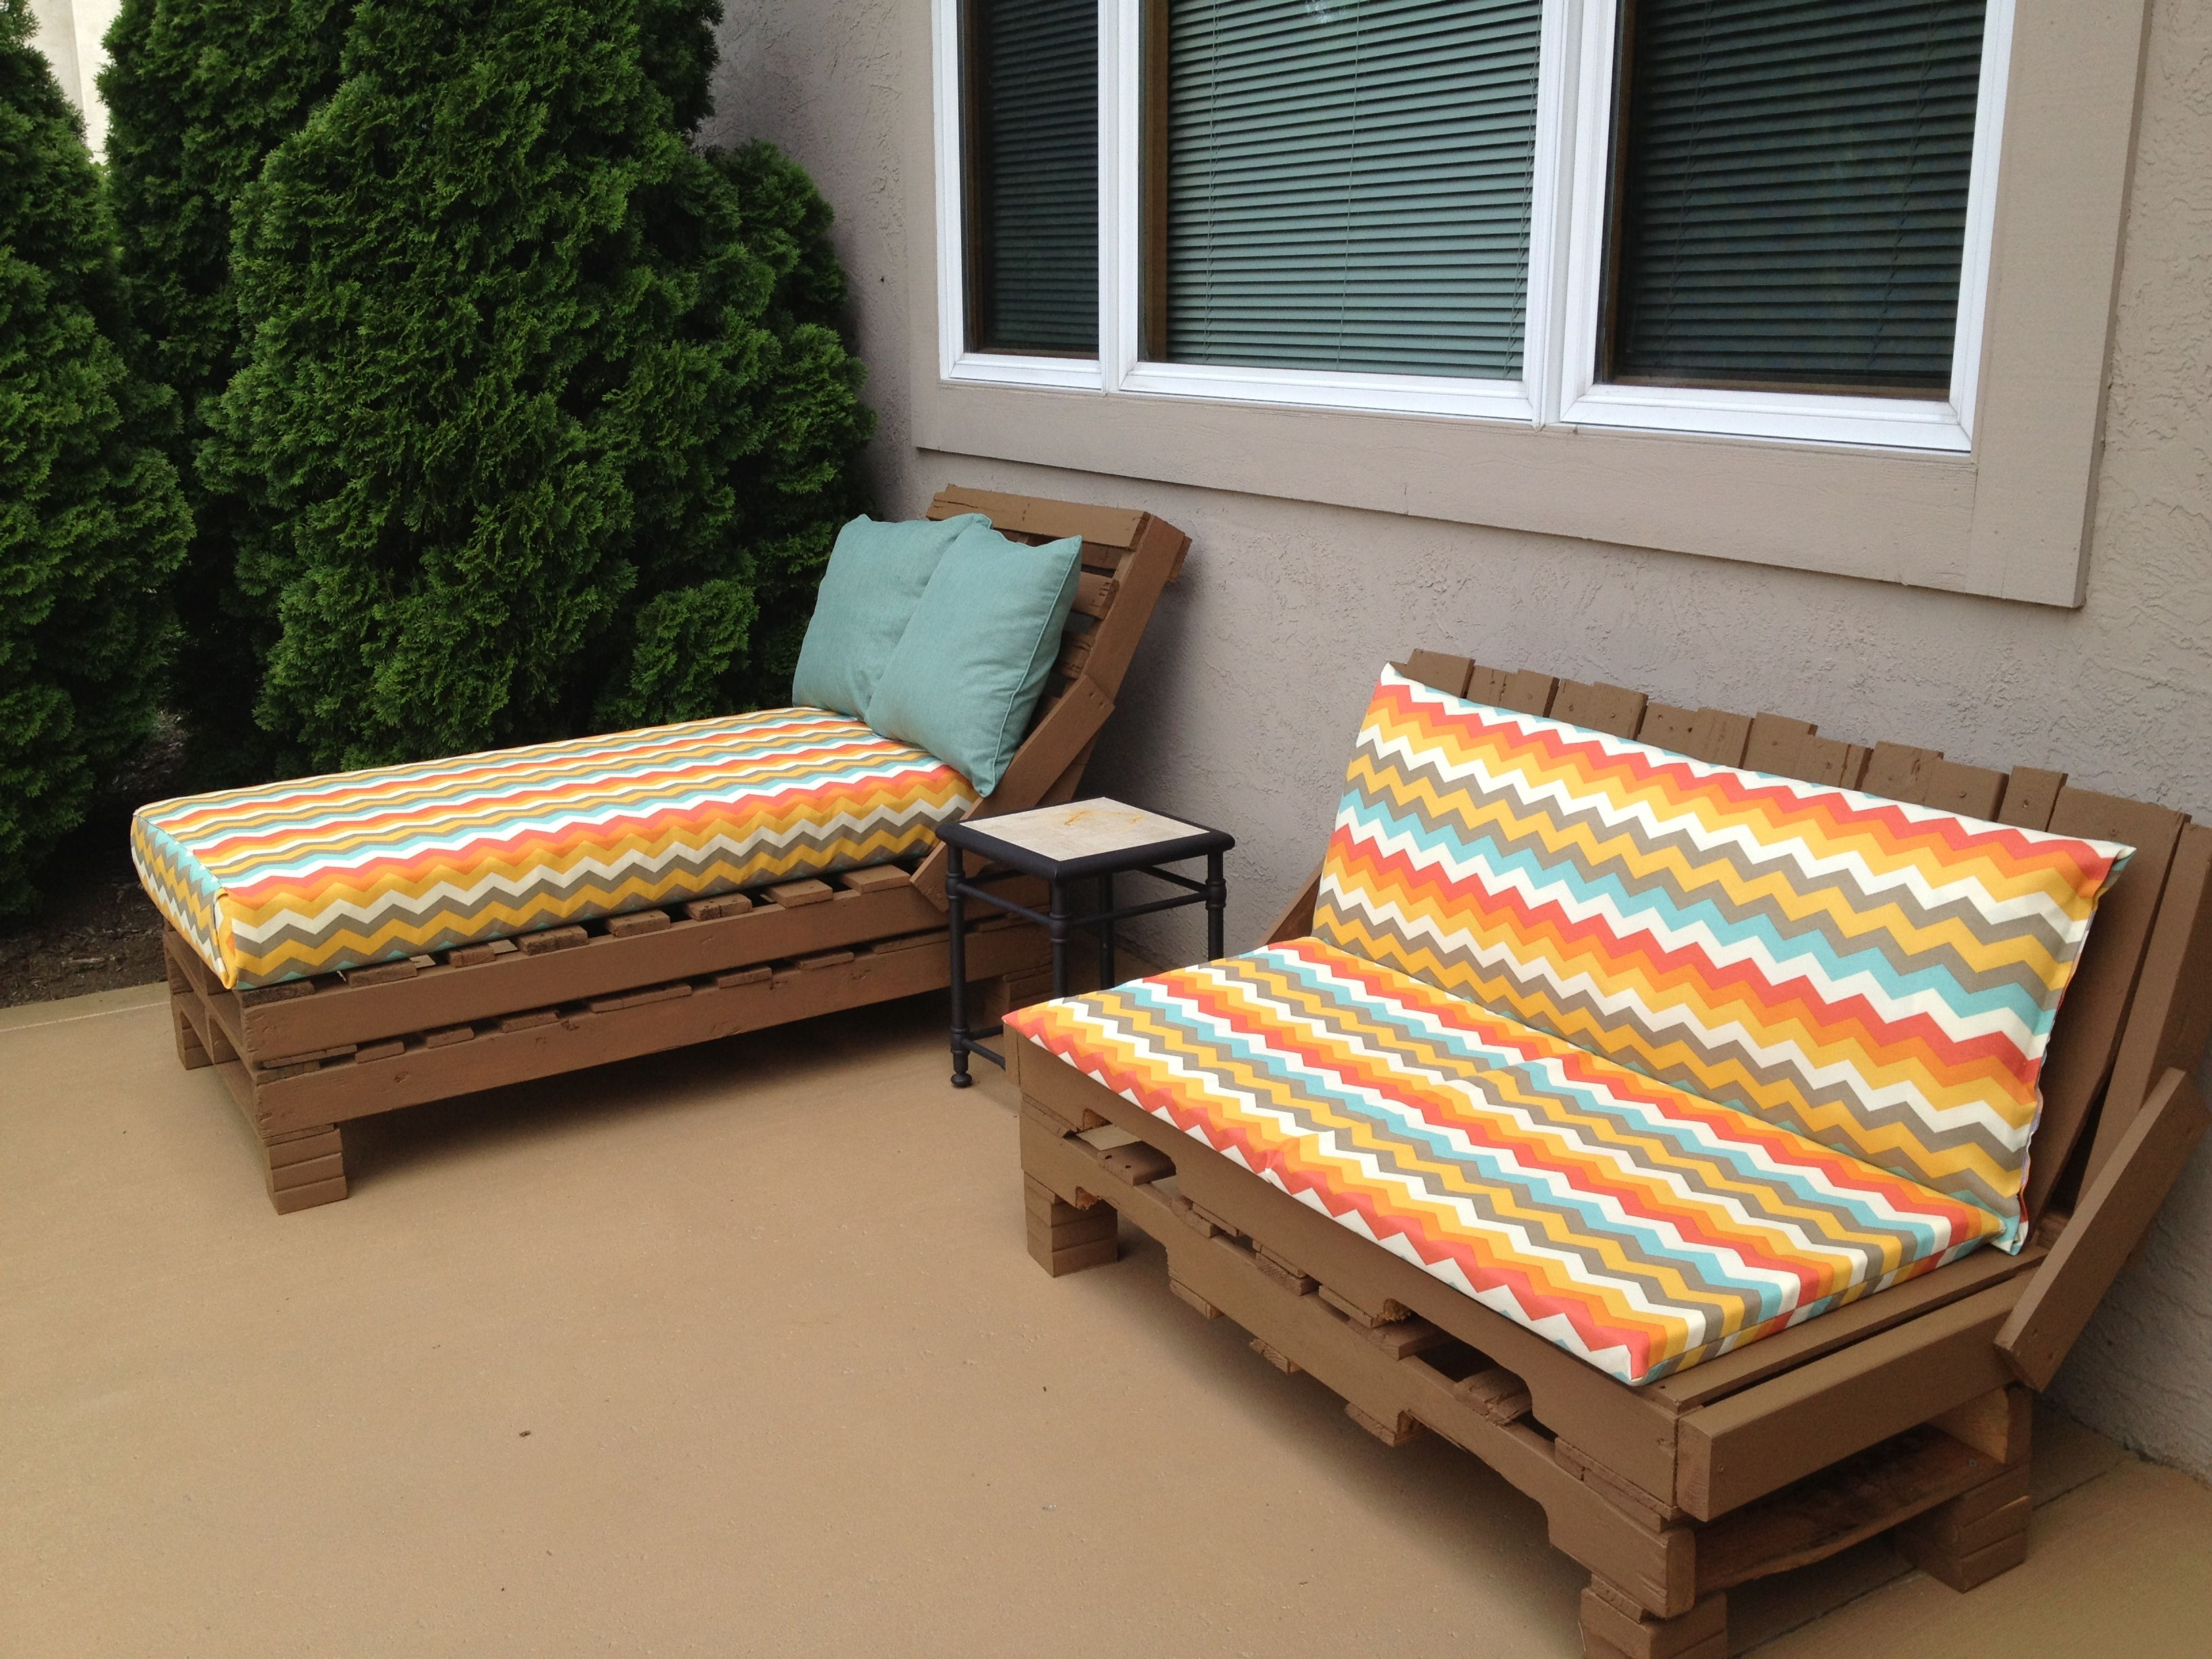 outdoor covers for garden furniture. pallet patio furniture so easy stack pallets nail together paint cover outdoor covers for garden